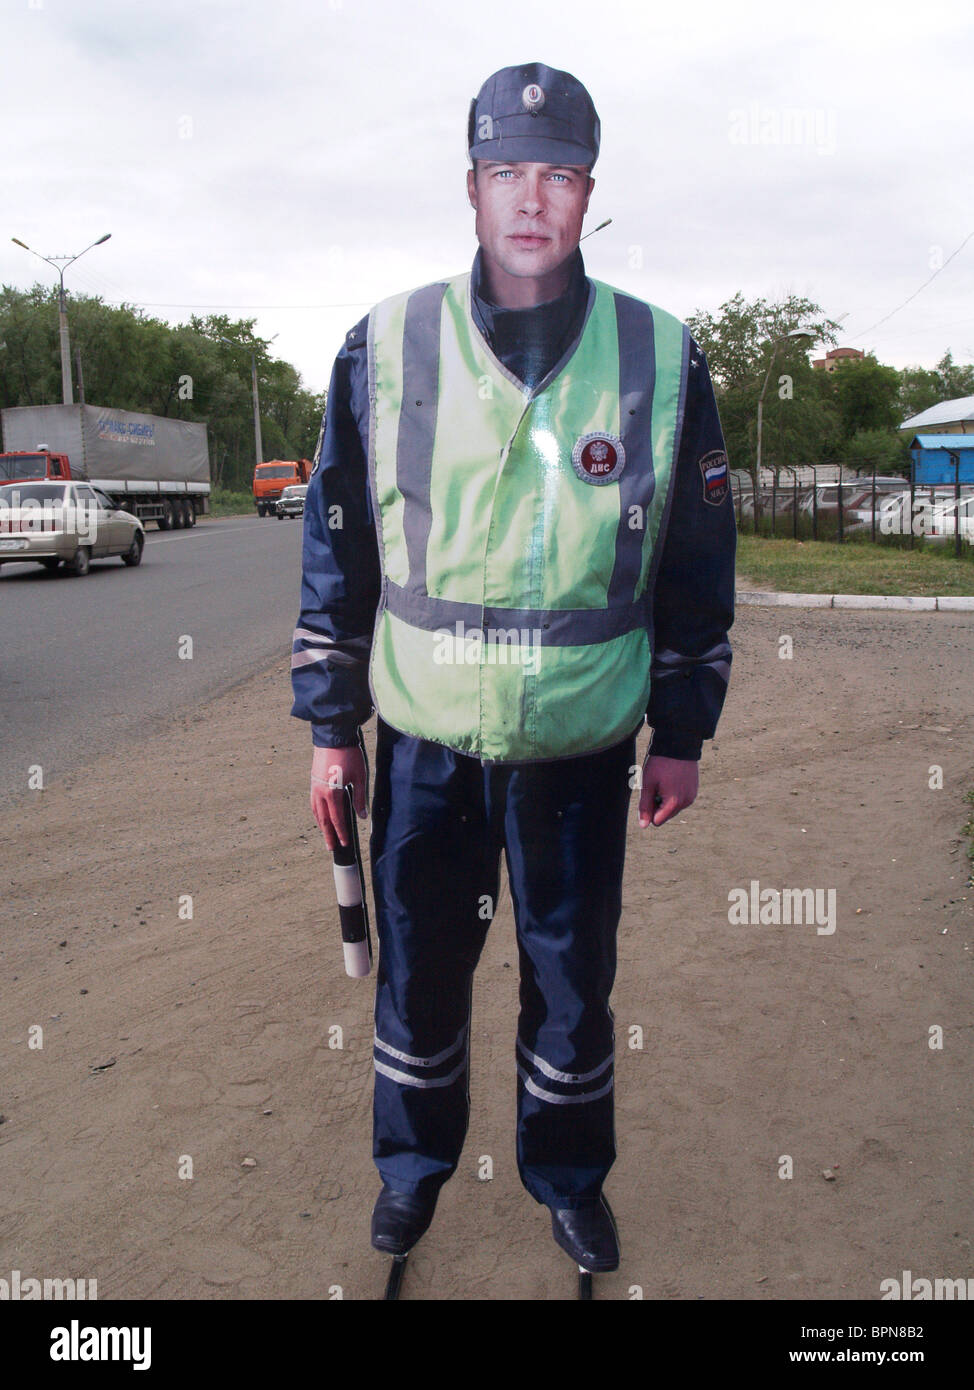 Cardboard cop with Brad Pitt's face appears in Omsk - Stock Image